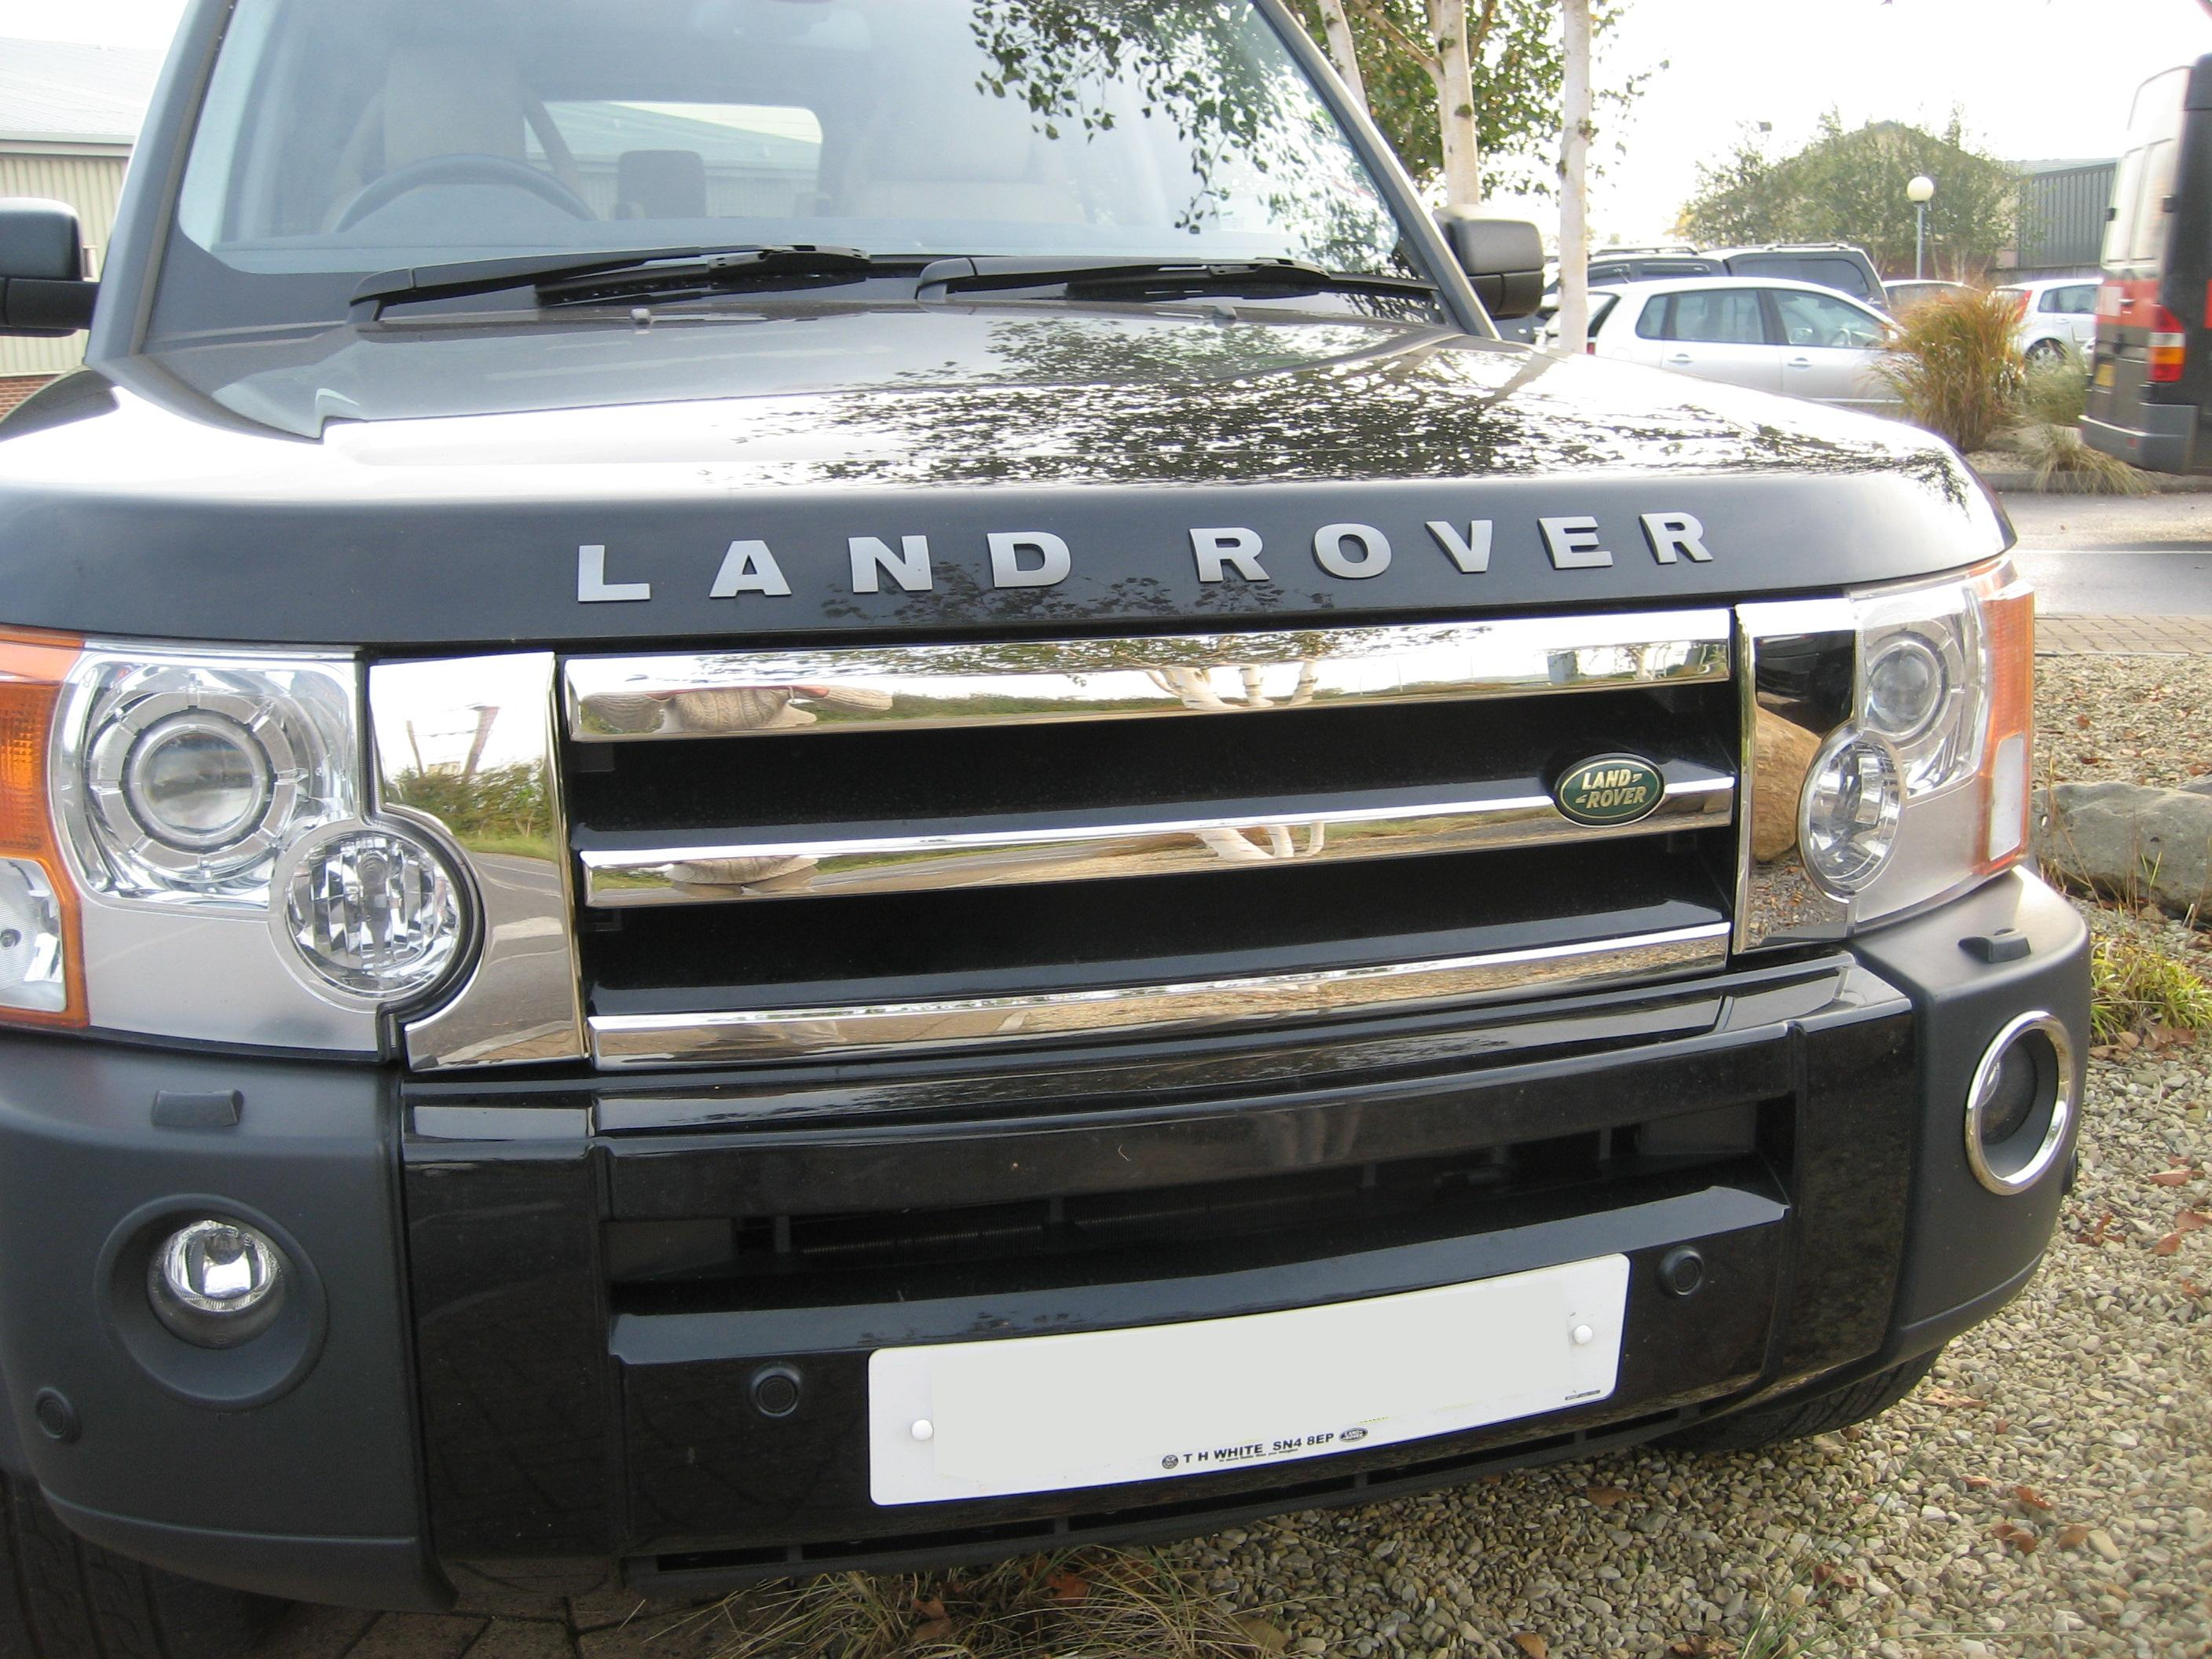 horse rover gs bumper product landrover motors front land white discovery img